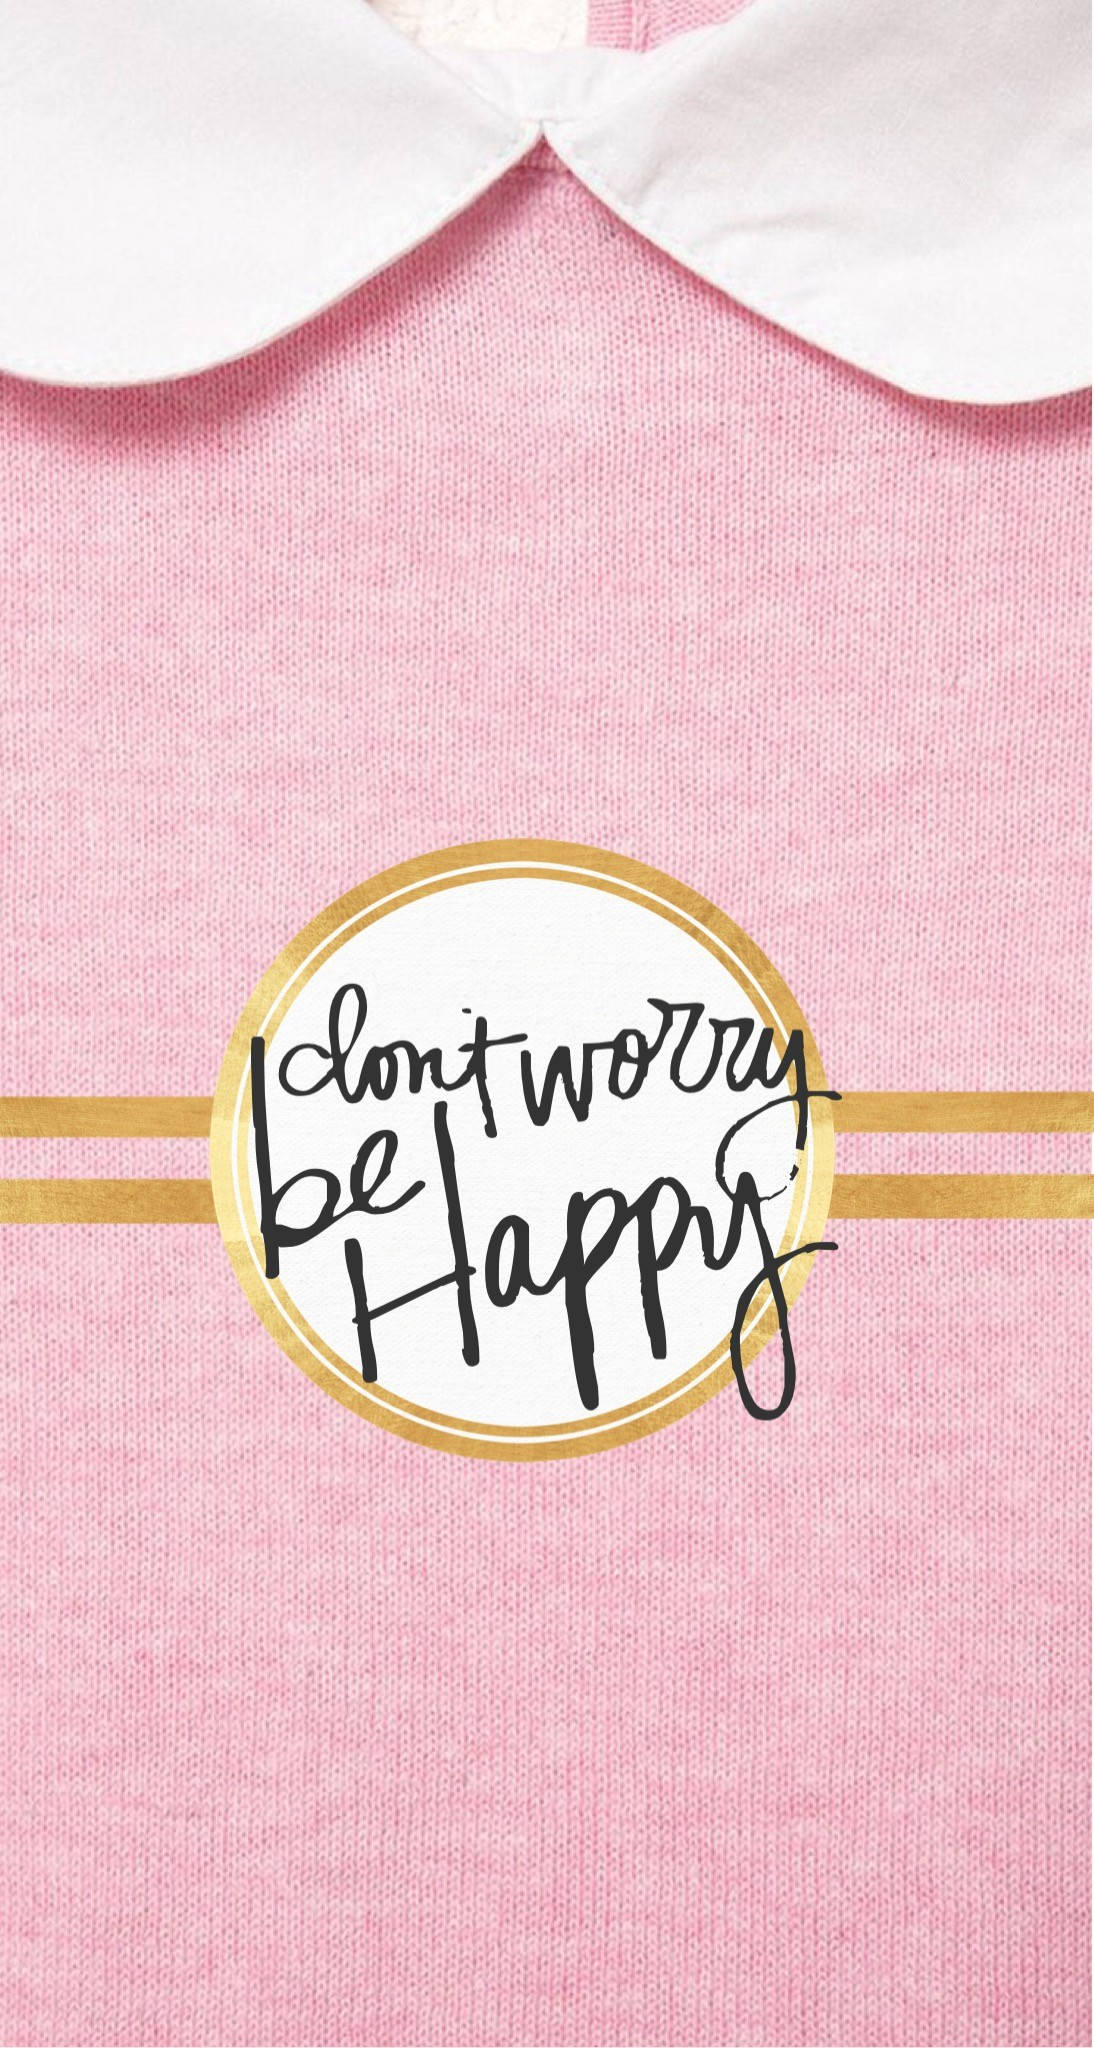 Don't worry be happy ☆ Find more Super Cute wallpapers for your #iPhone